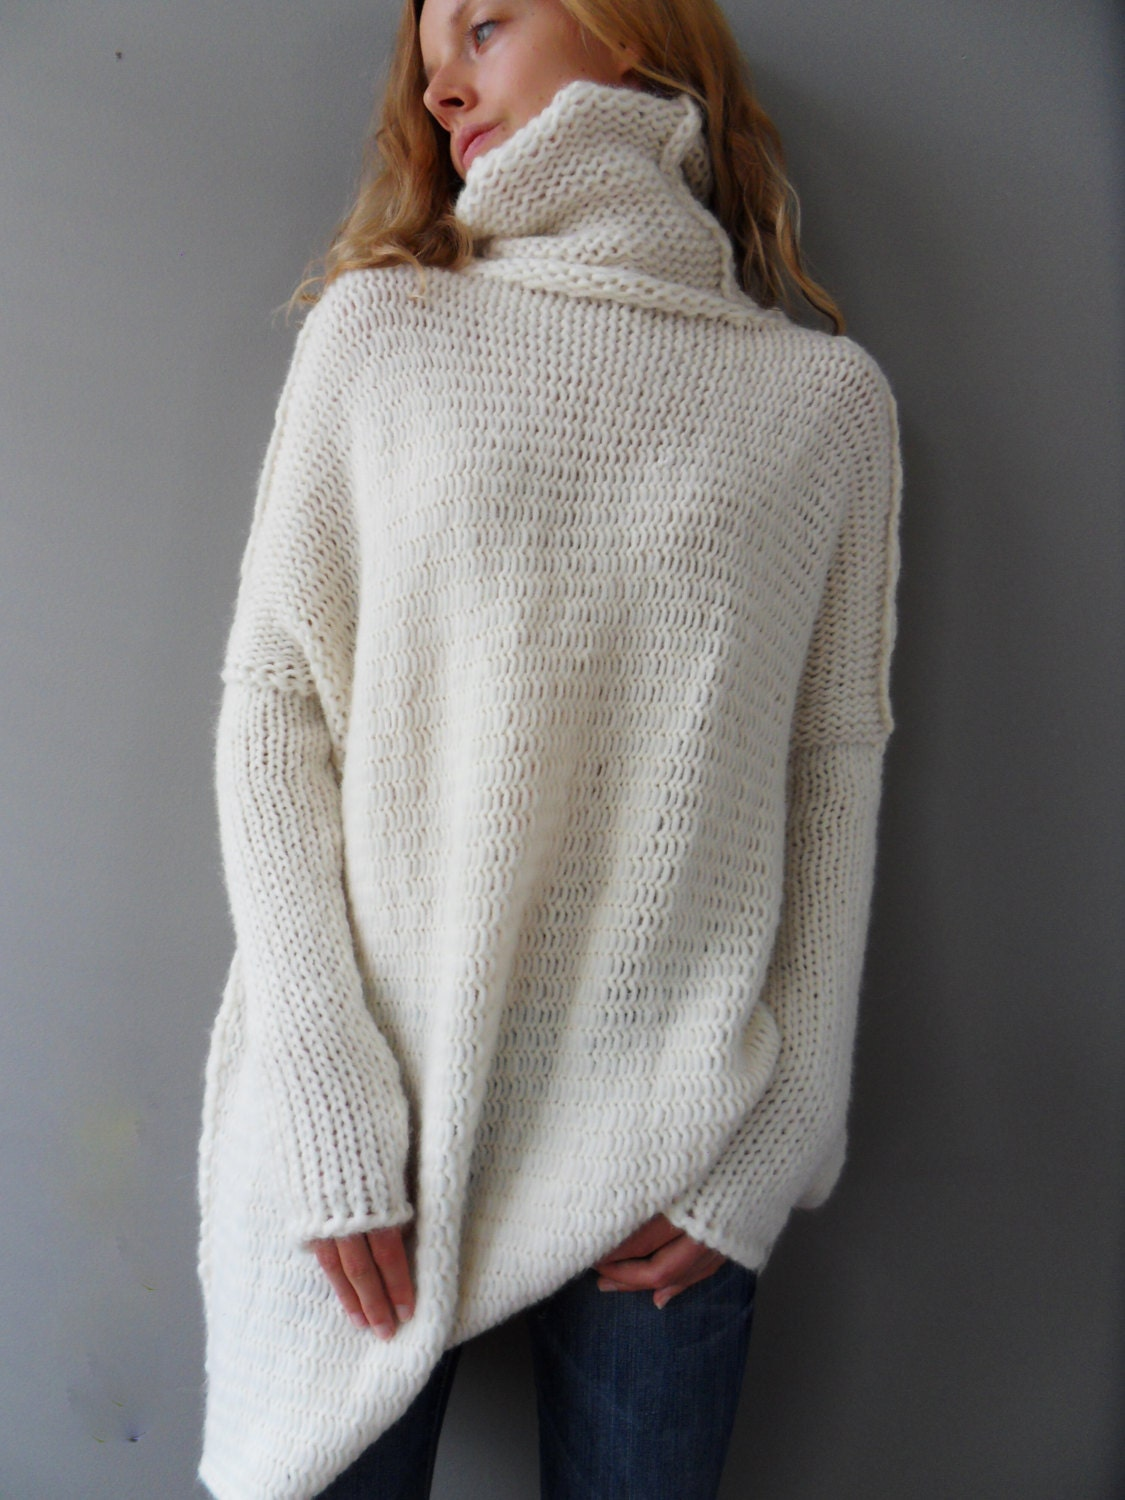 Knitting Patterns For Chunky Wool Sweaters : Oversized Chunky knit sweater. Slouchy / Bulky by RoseUniqueStyle